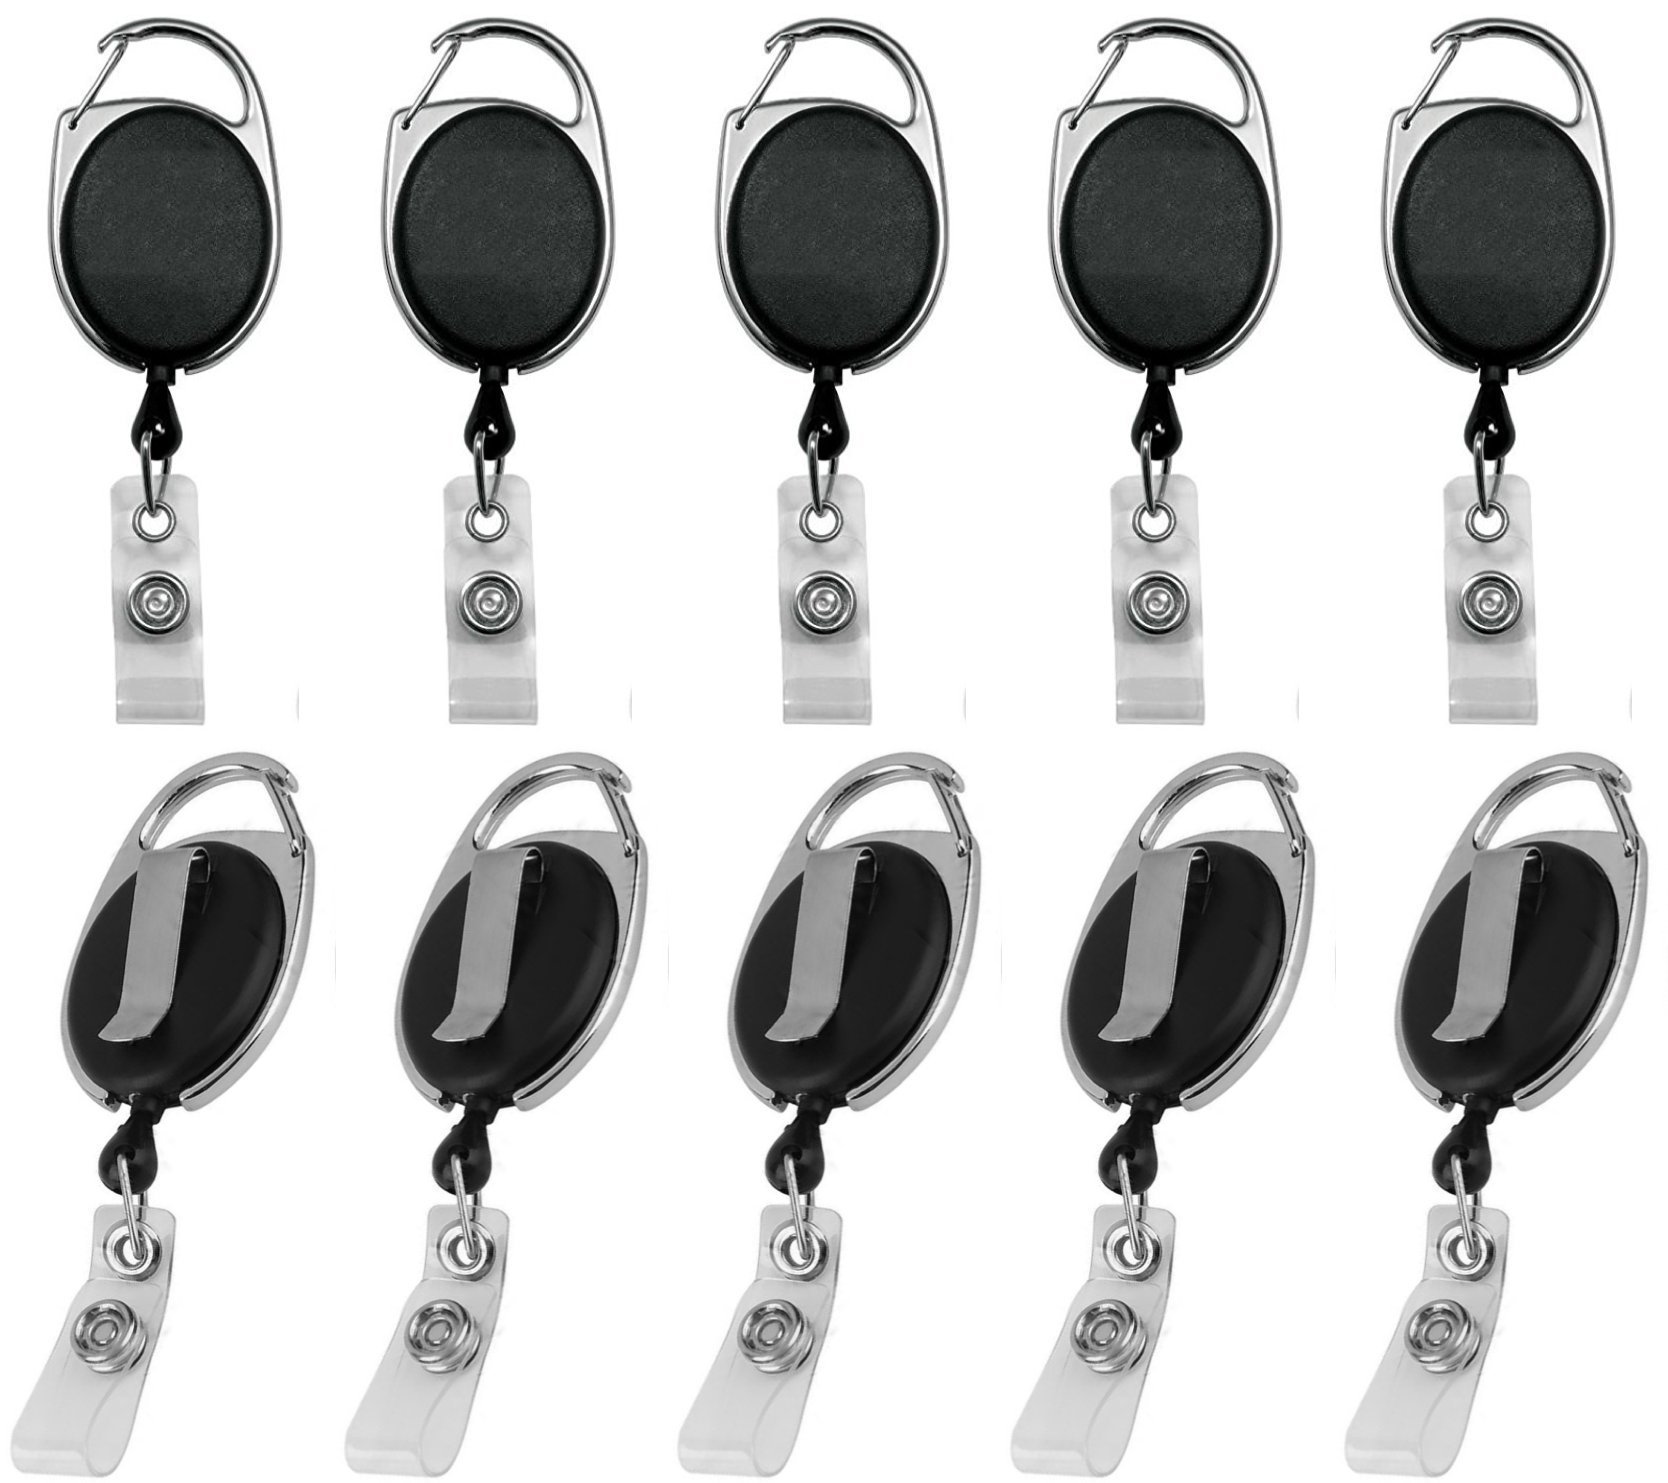 Professional Heavy Duty Retractable Badge Reel for Key Chains, ID Card, Name Tag, Nurse Badges, Lanyards Holder (2 ft. Cord Carabiner with Belt Clip) | Black by Blue Shoe Guys (10-Pack)